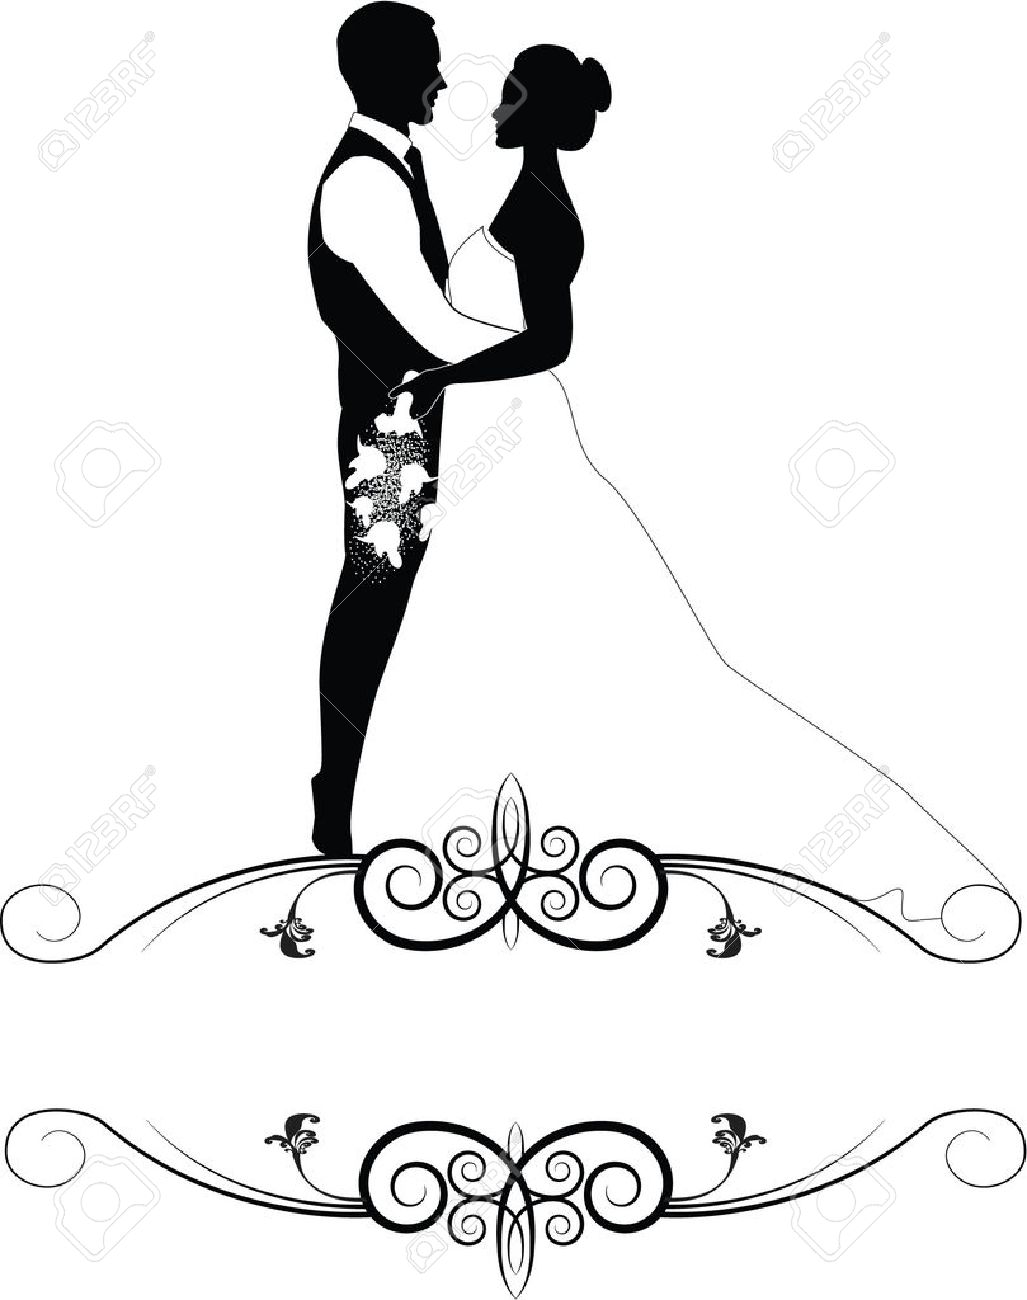 wedding couple in frame royalty free cliparts vectors and stock rh 123rf com wedding couple clipart black and white wedding couple clipart free